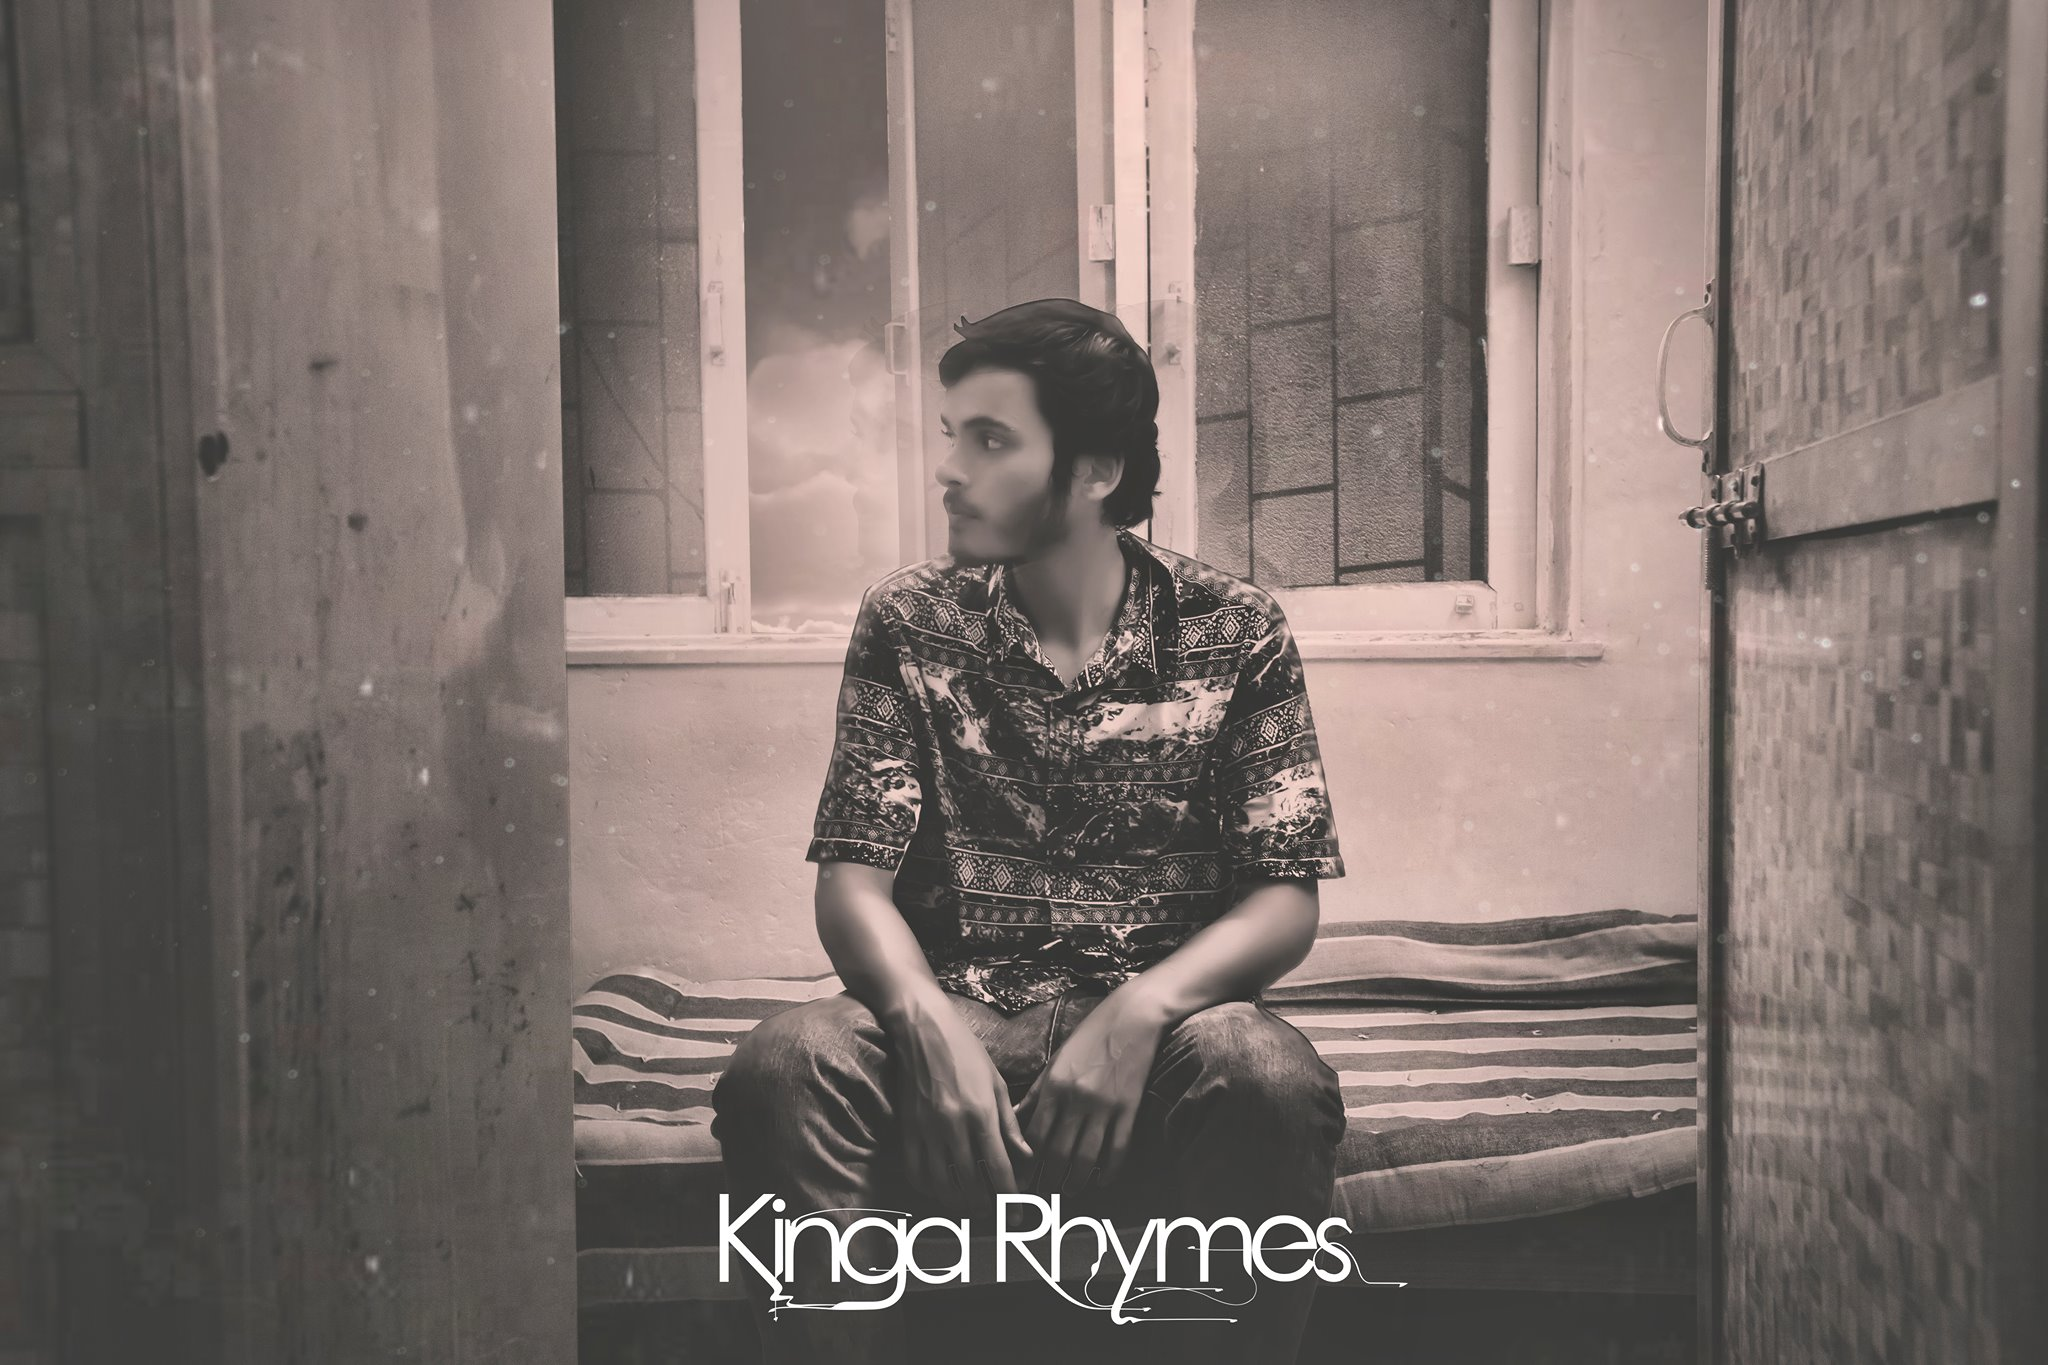 kinga rhymes hip hop homeland 101 india